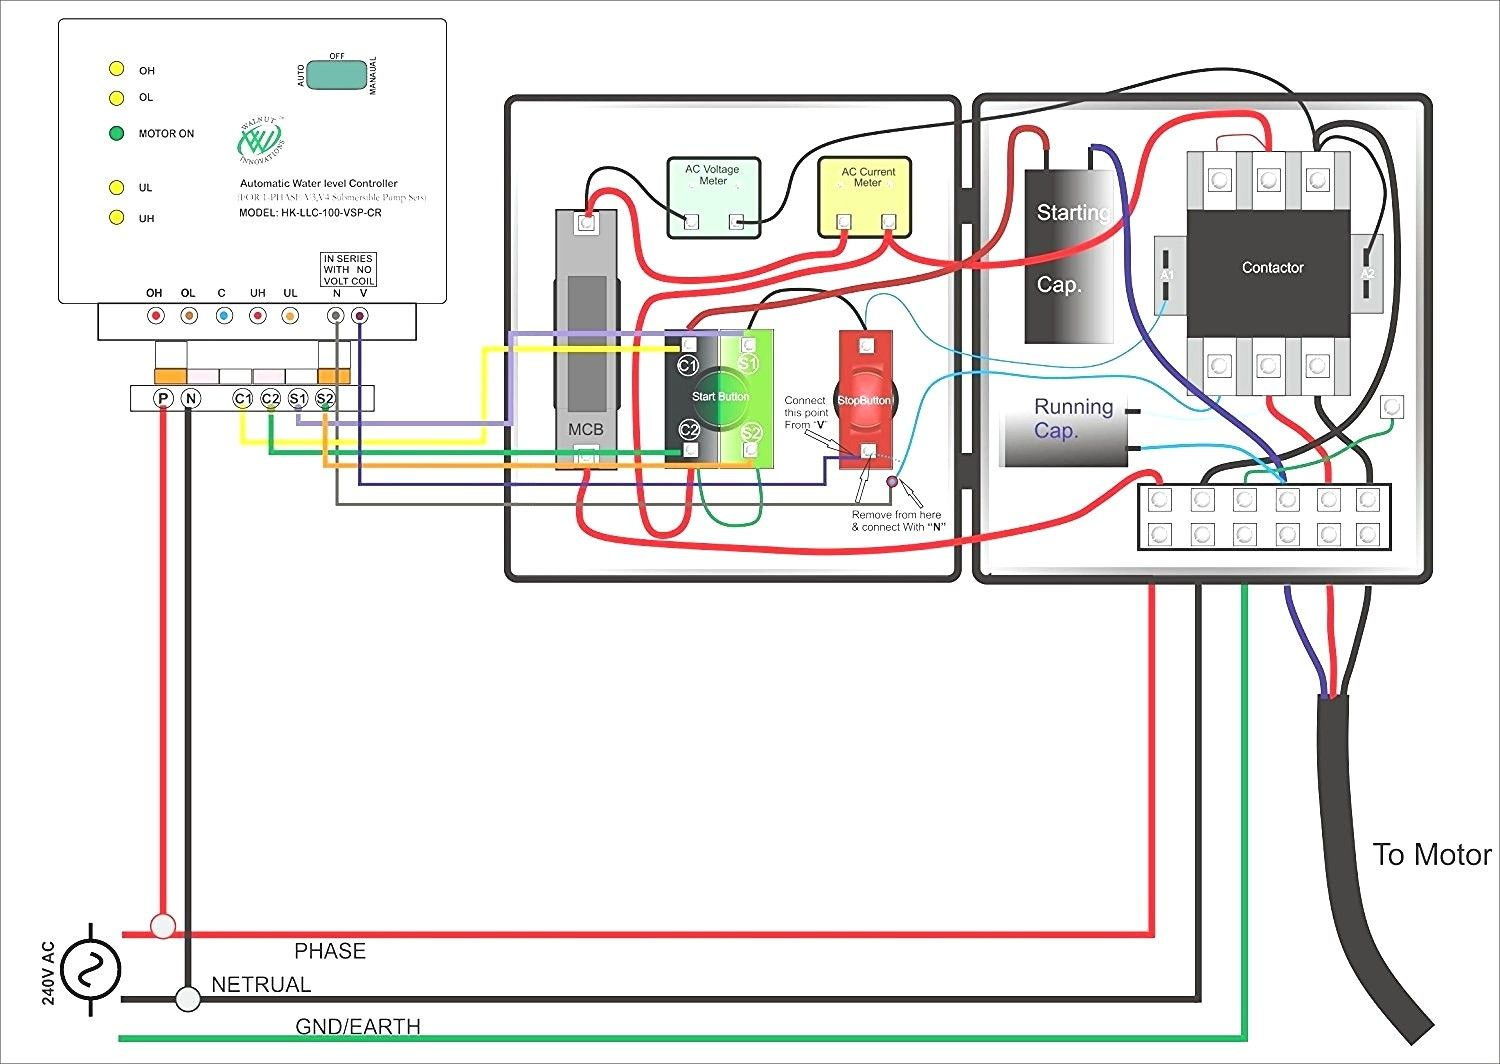 110 Volt Deep Well Pump Wiring Diagram - Wiring Diagram Work Well Pump Volt Wire Wiring Diagram on